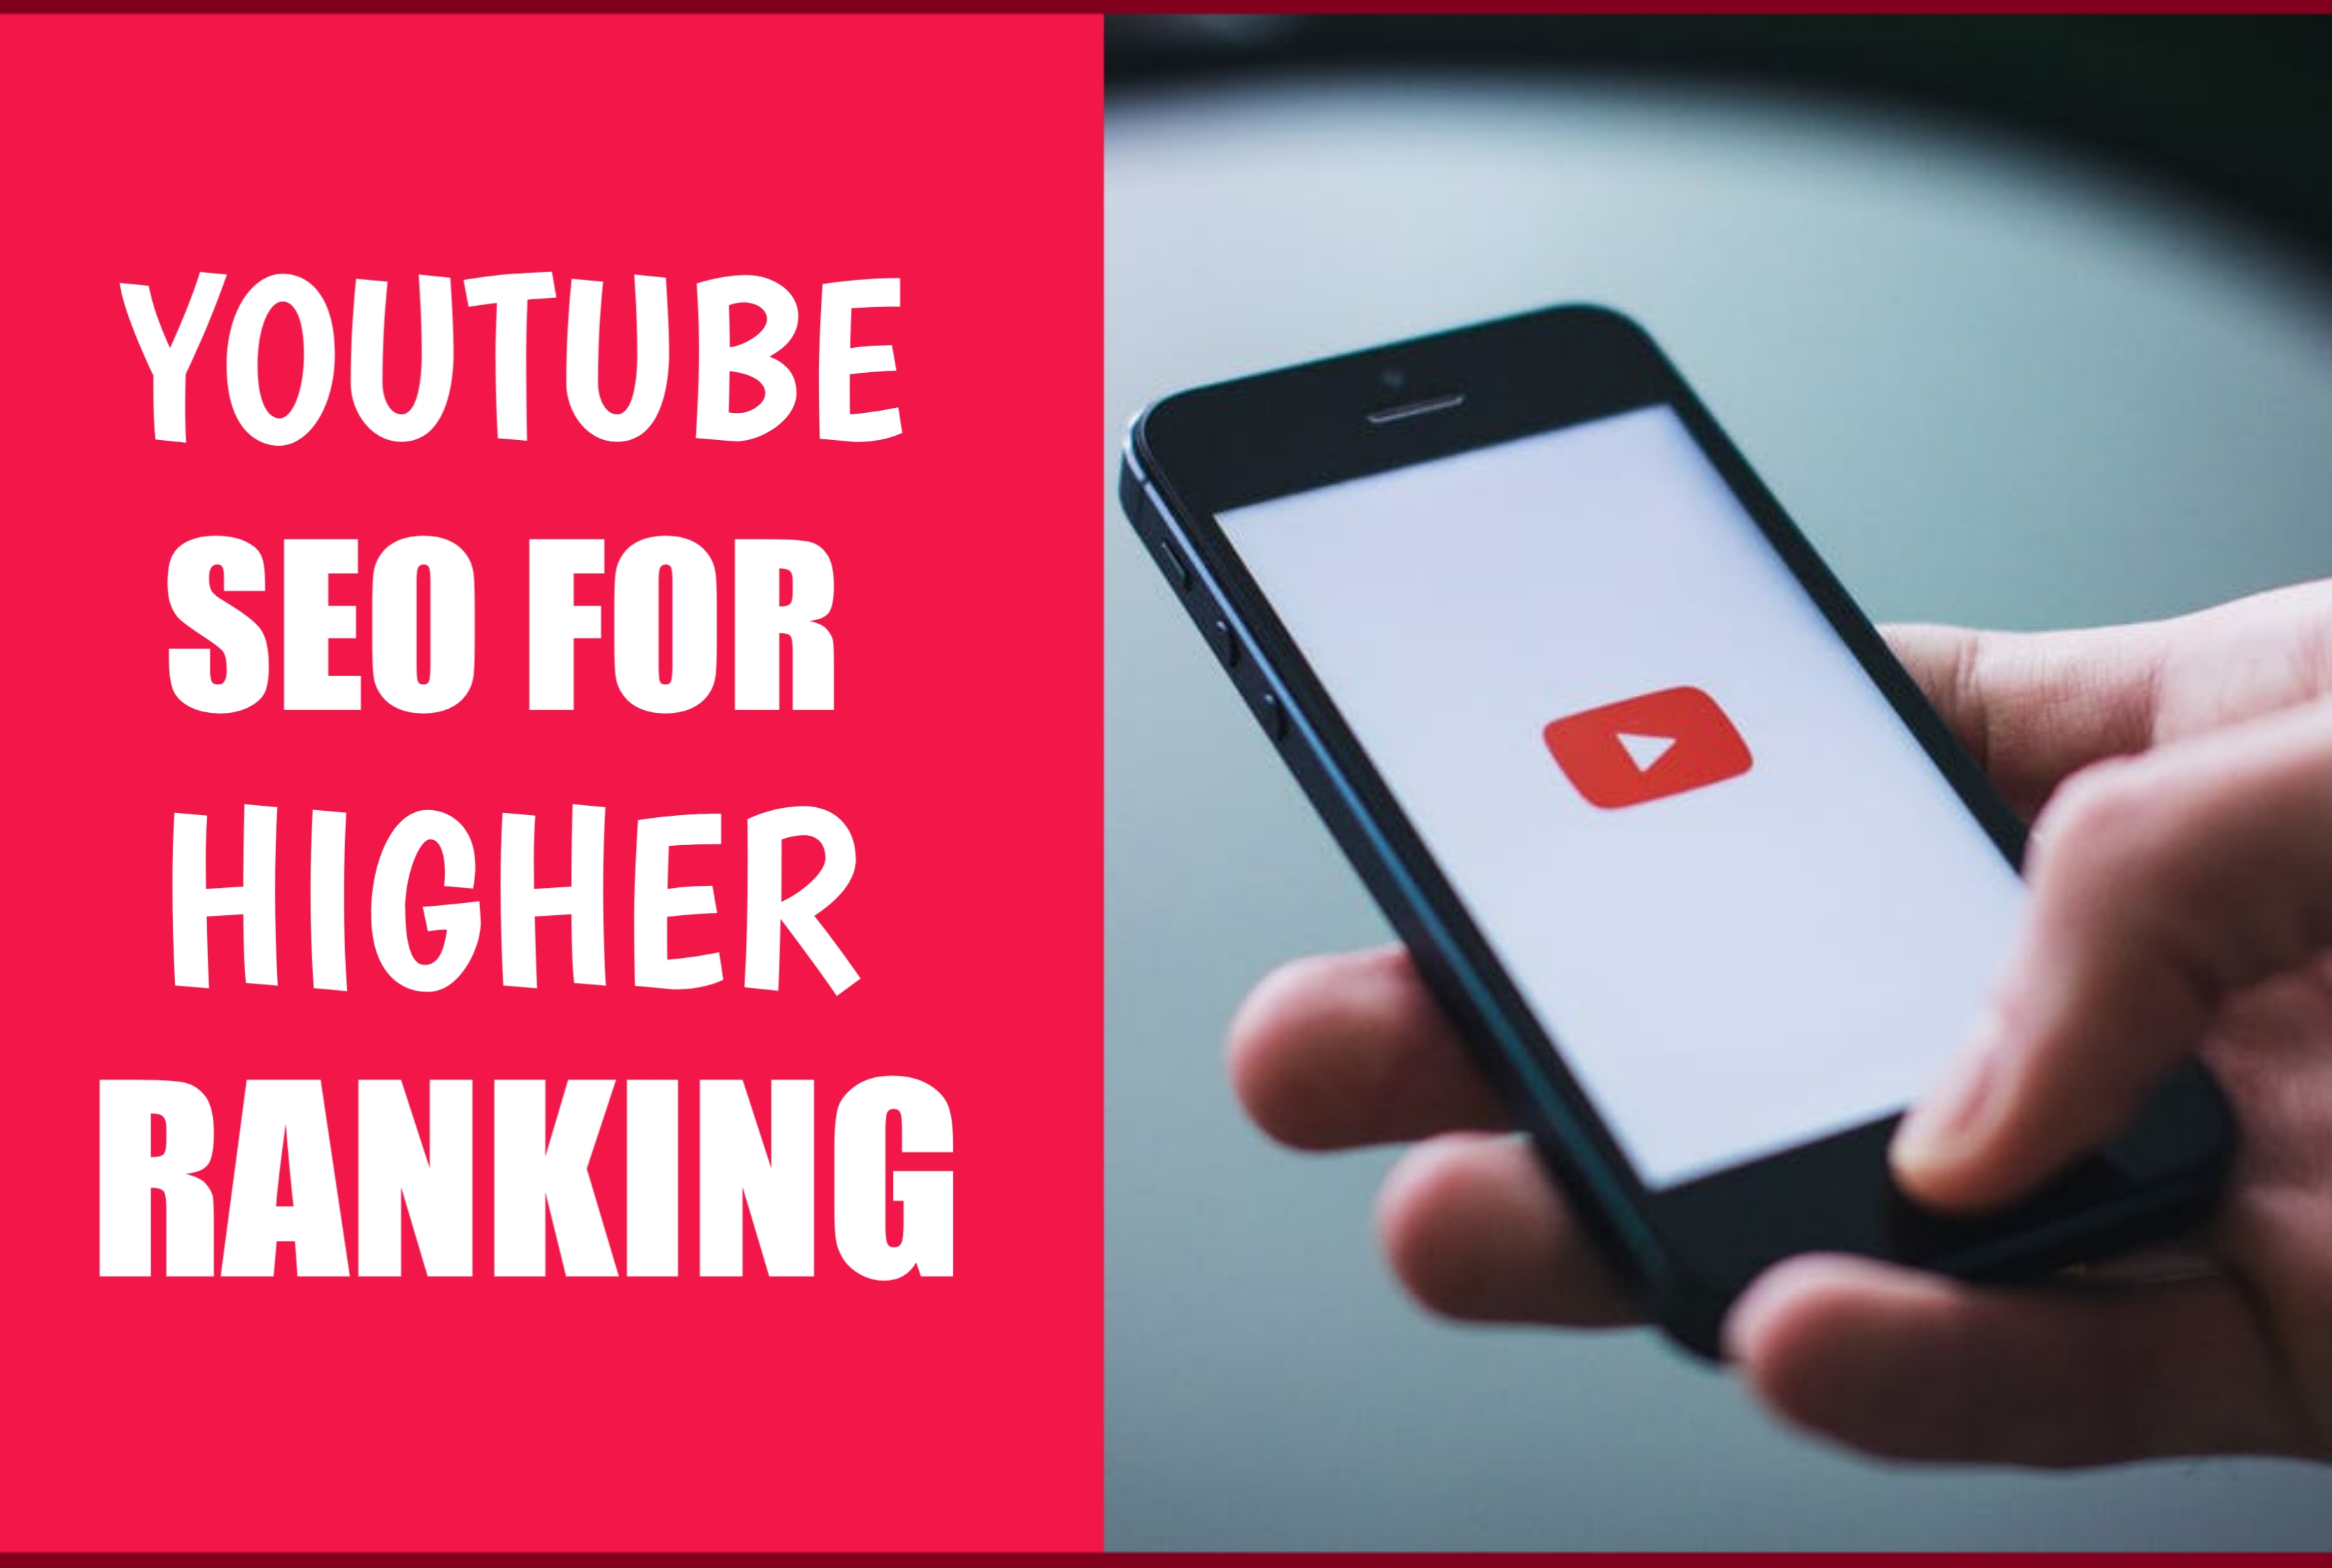 QUICKLY Rank Your YouTube Videos With White Hat SEO Optimization